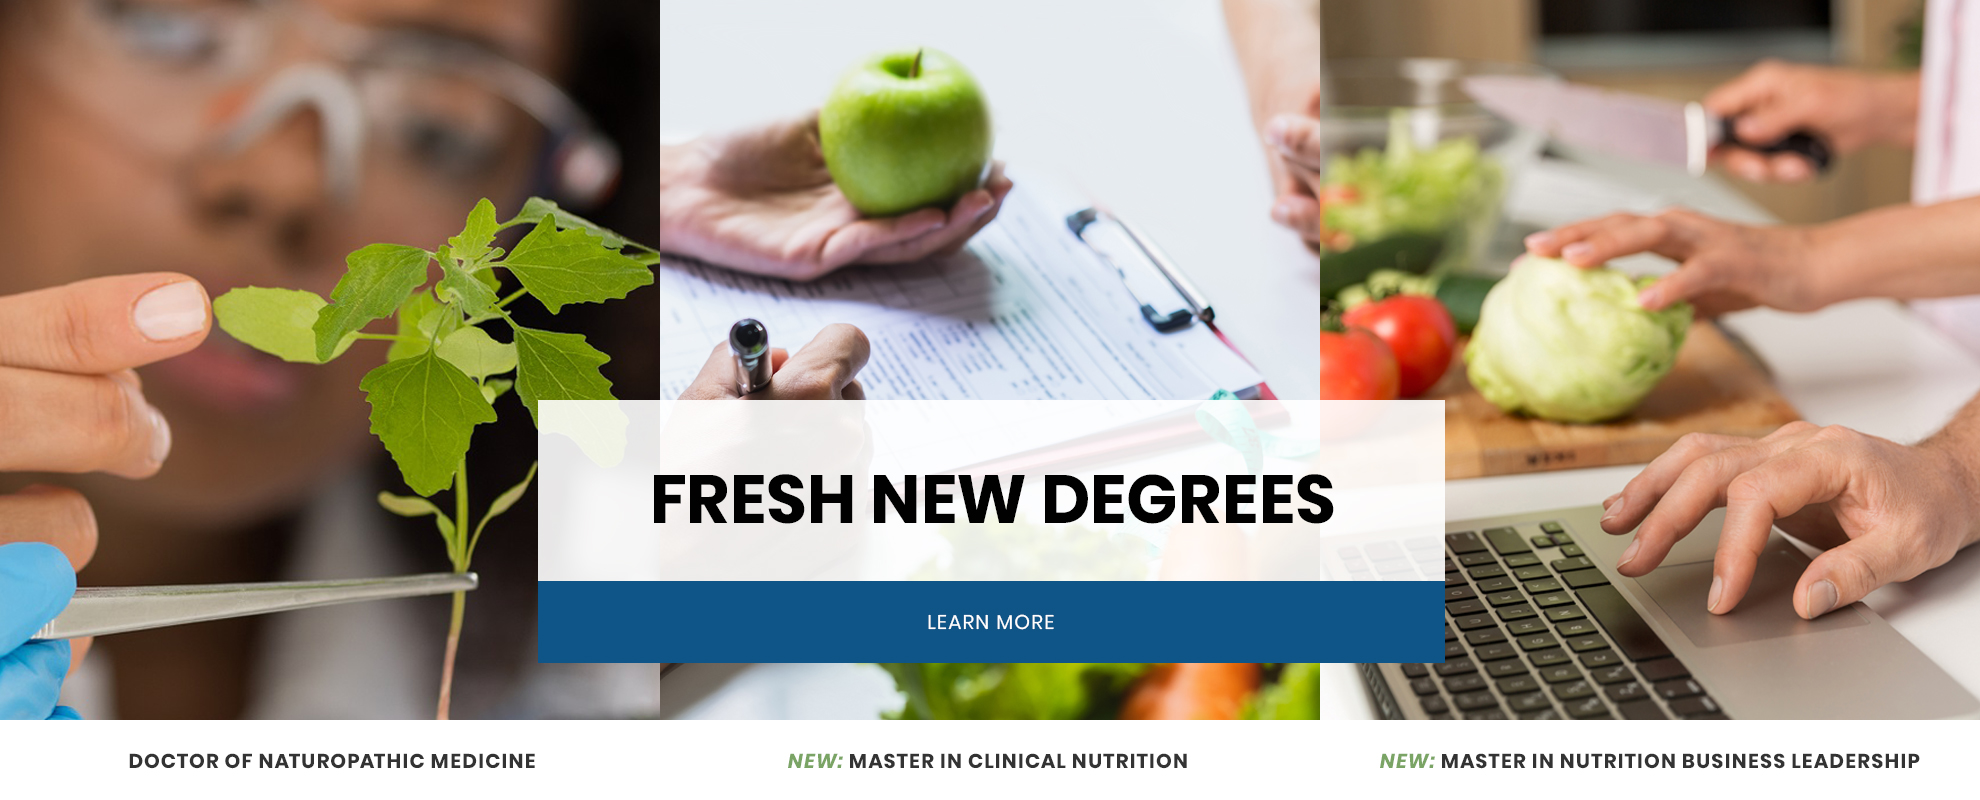 SCNM has fresh new degrees. Click for details.